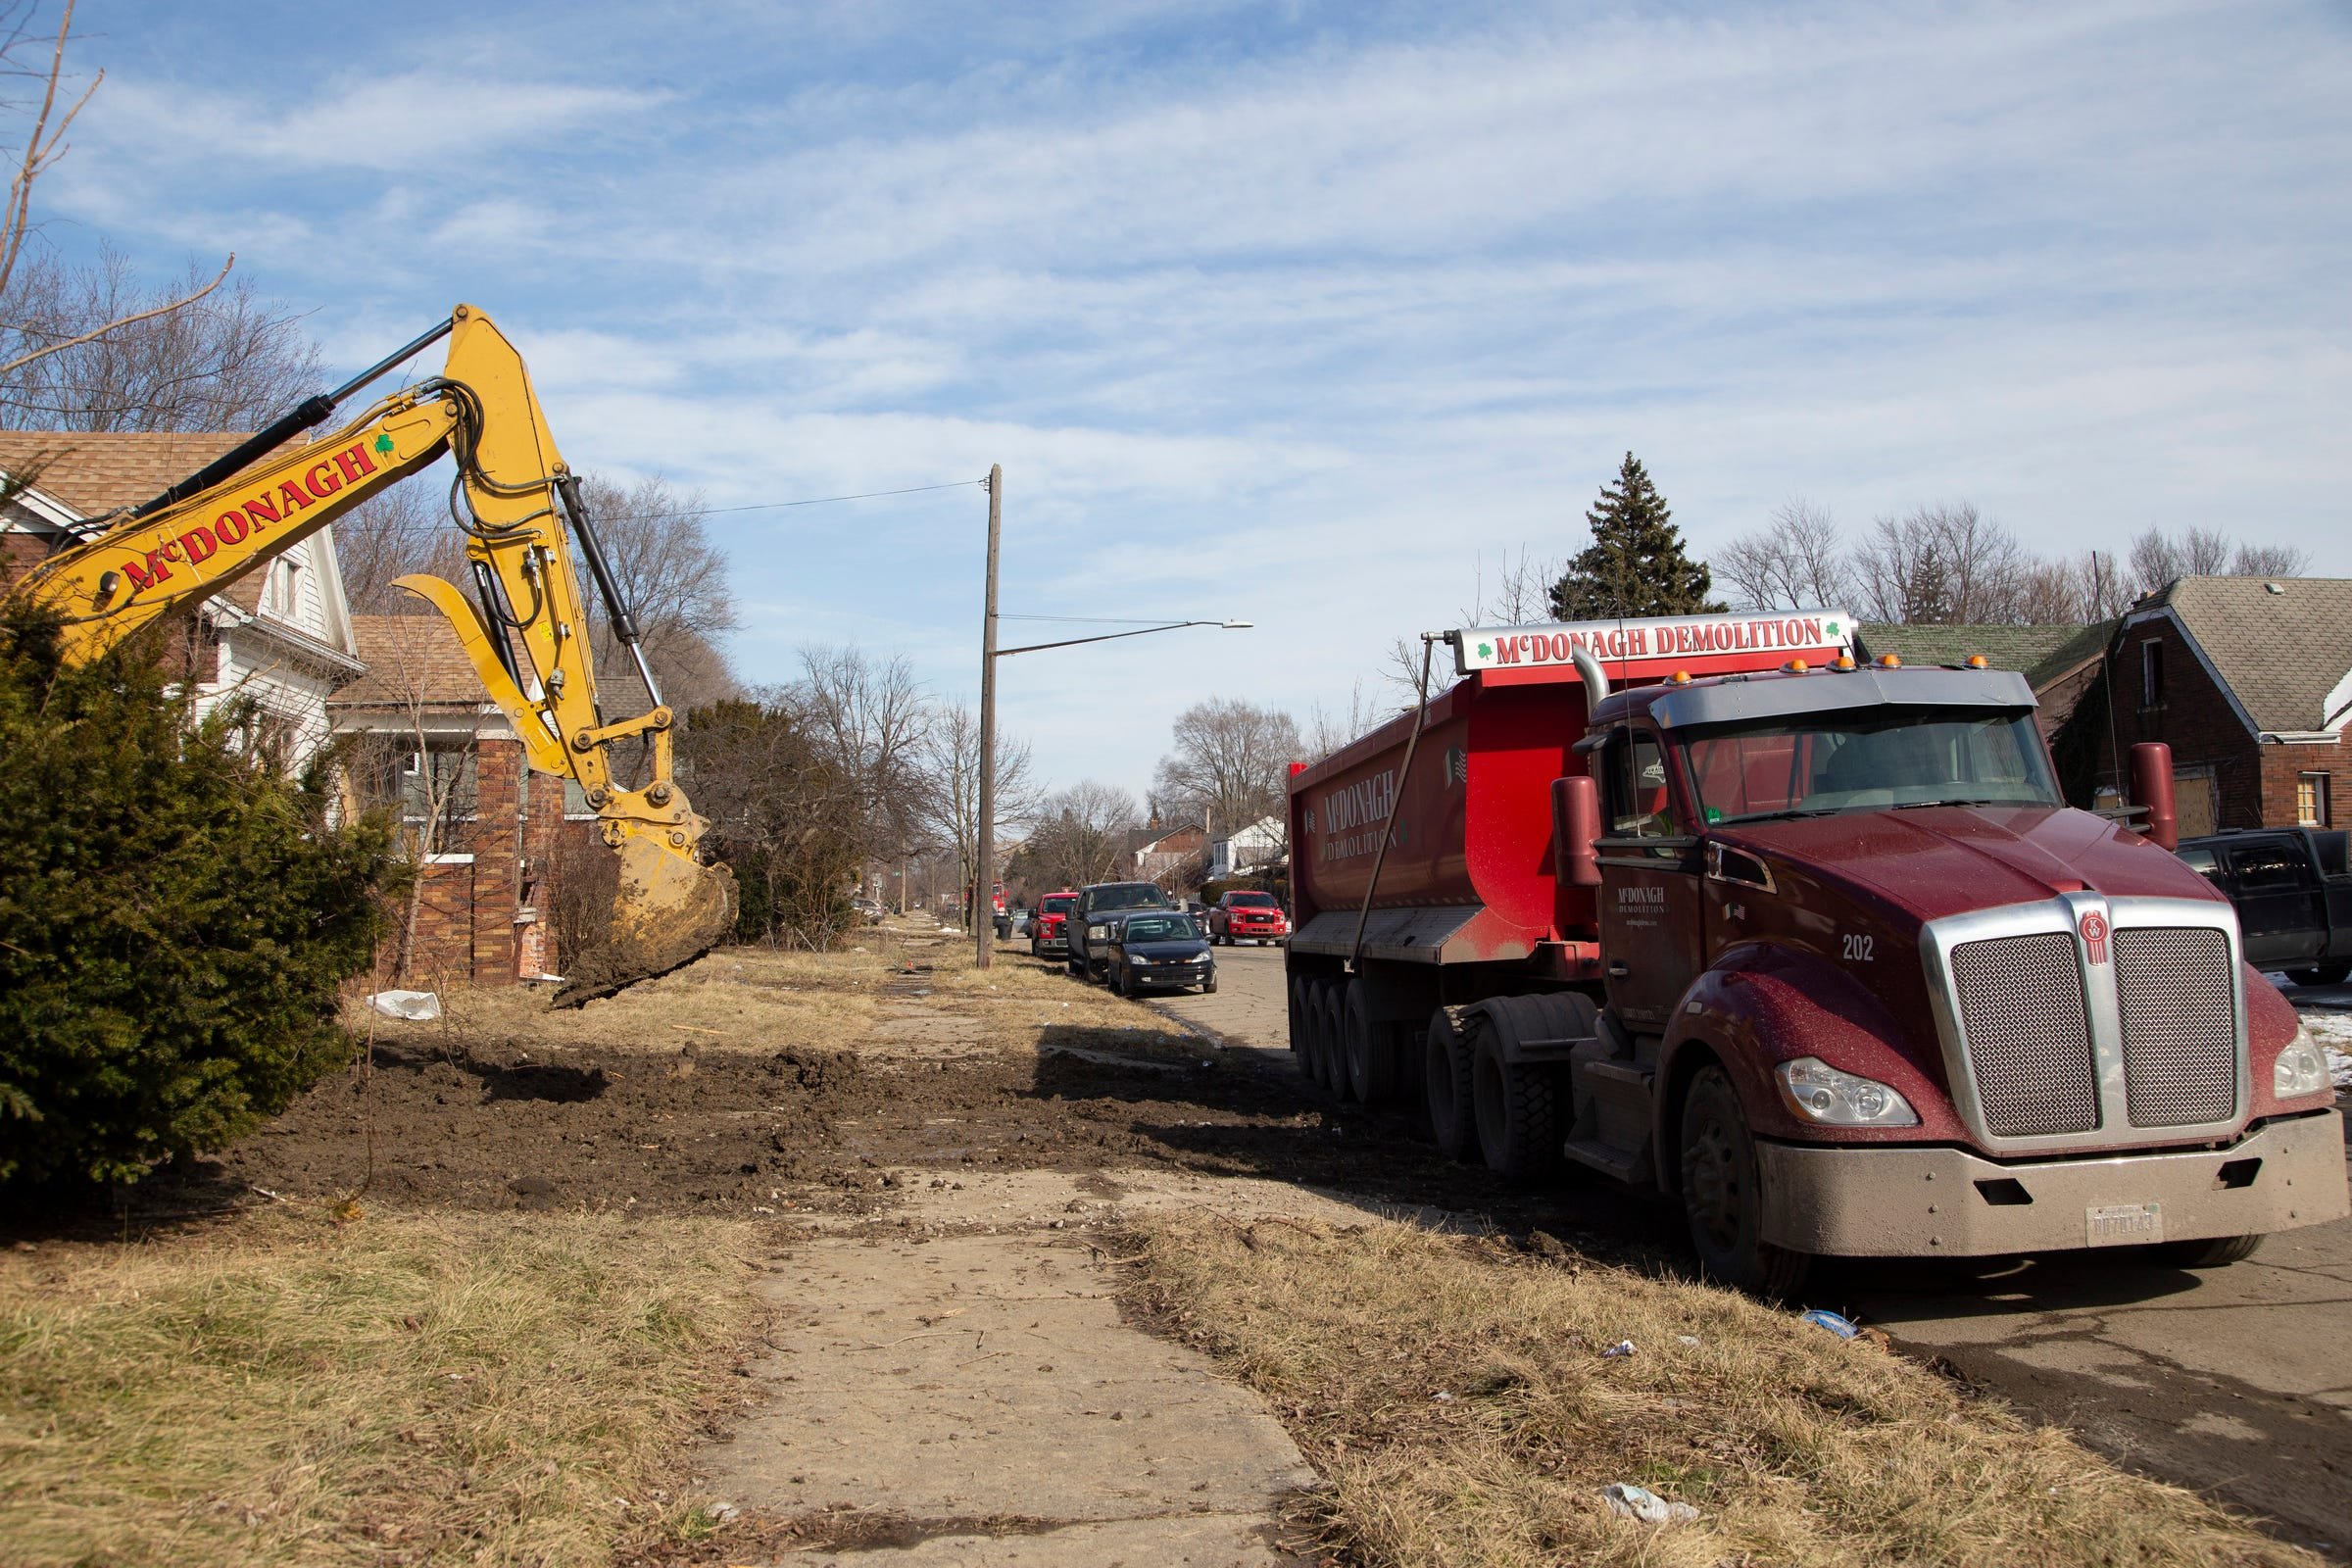 Detroit demolition program mismanaged riddled with problems auditor says